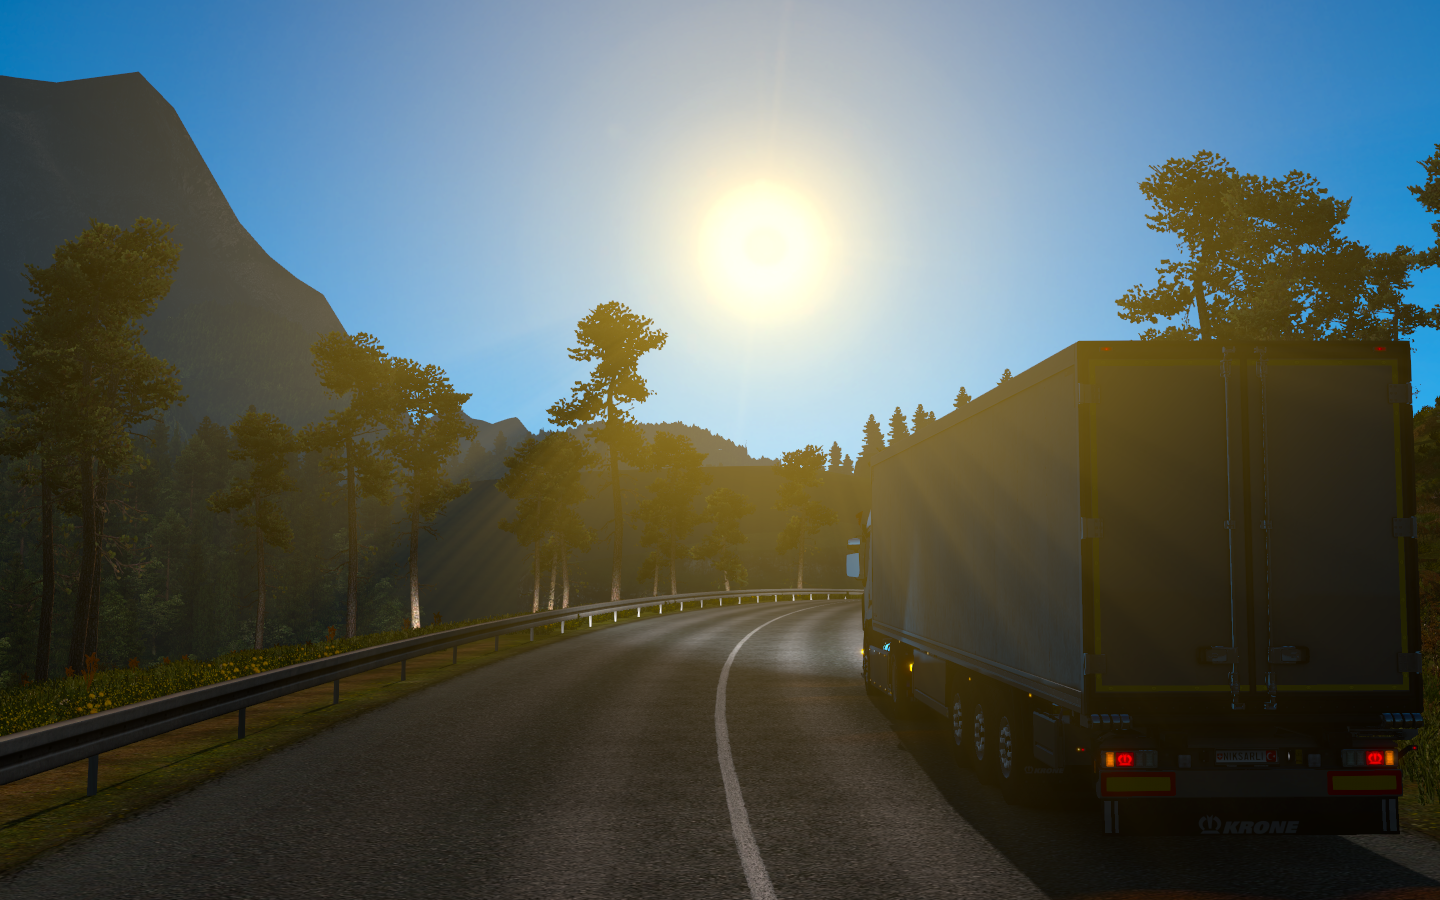 ets2_20190518_220423_00.png